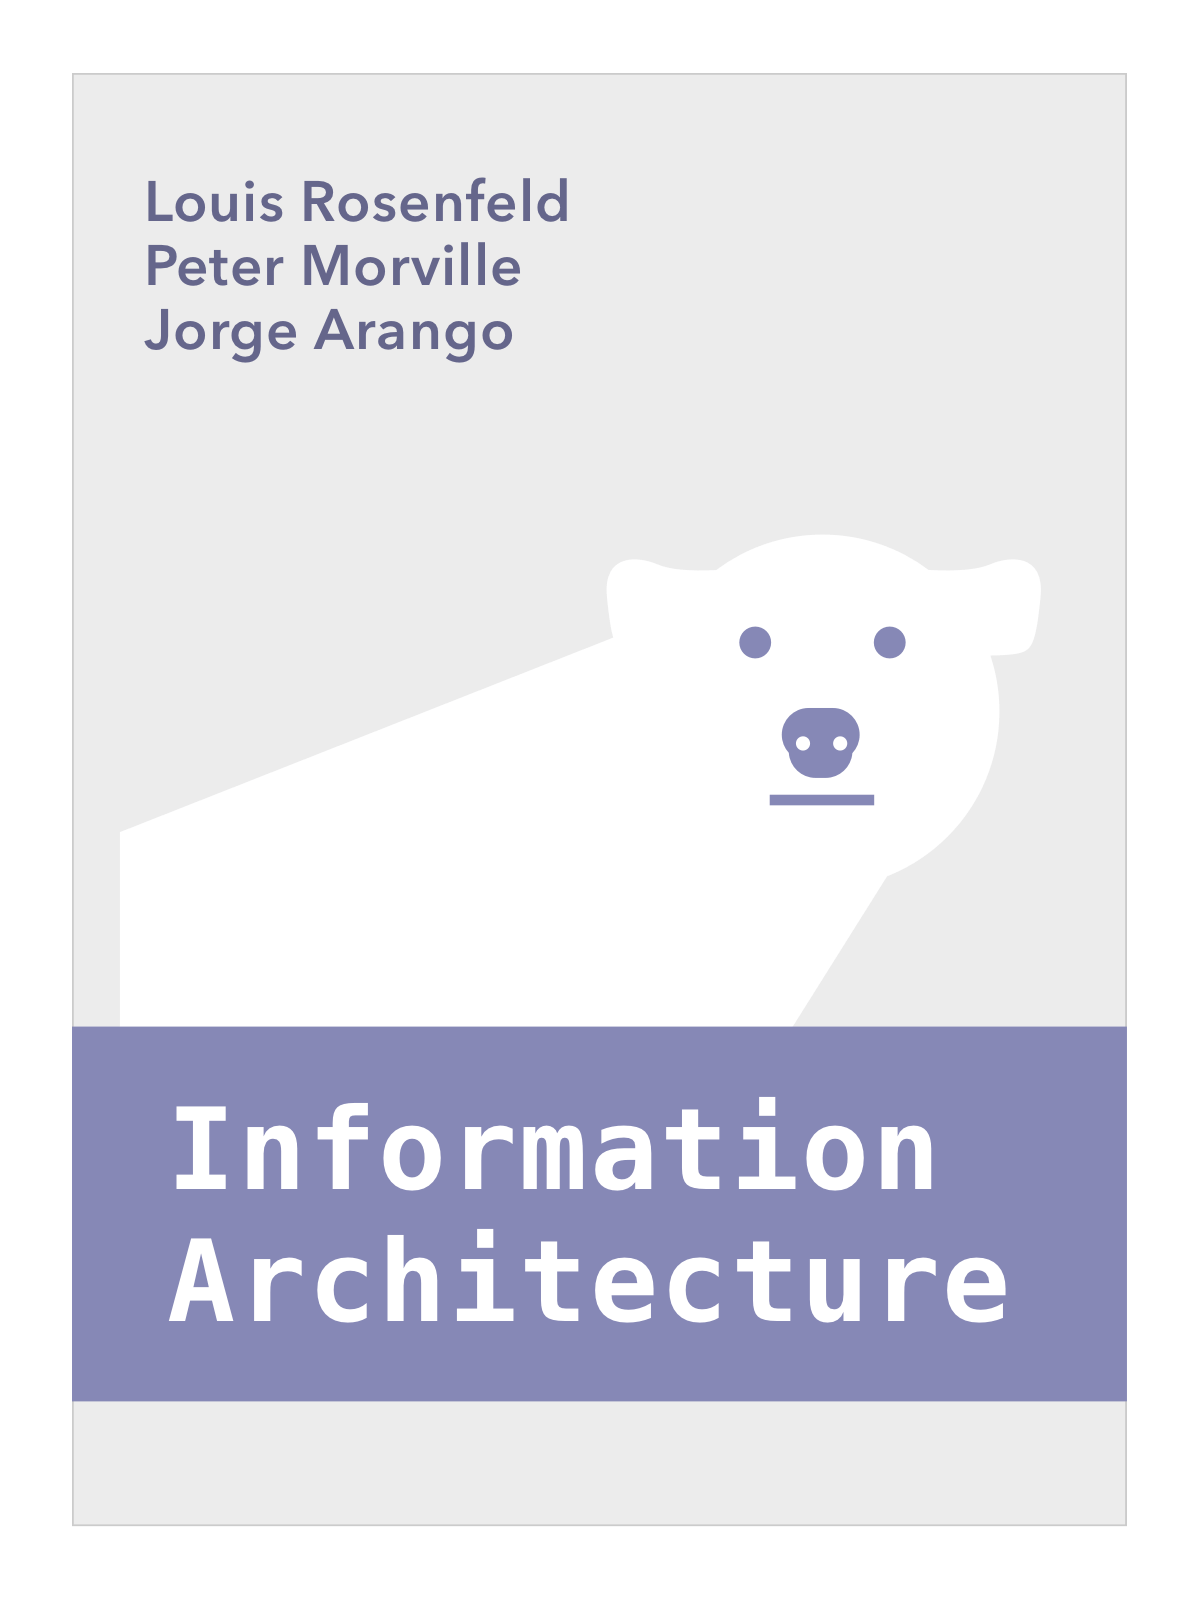 Louis Rosenfeld; Information Architecture